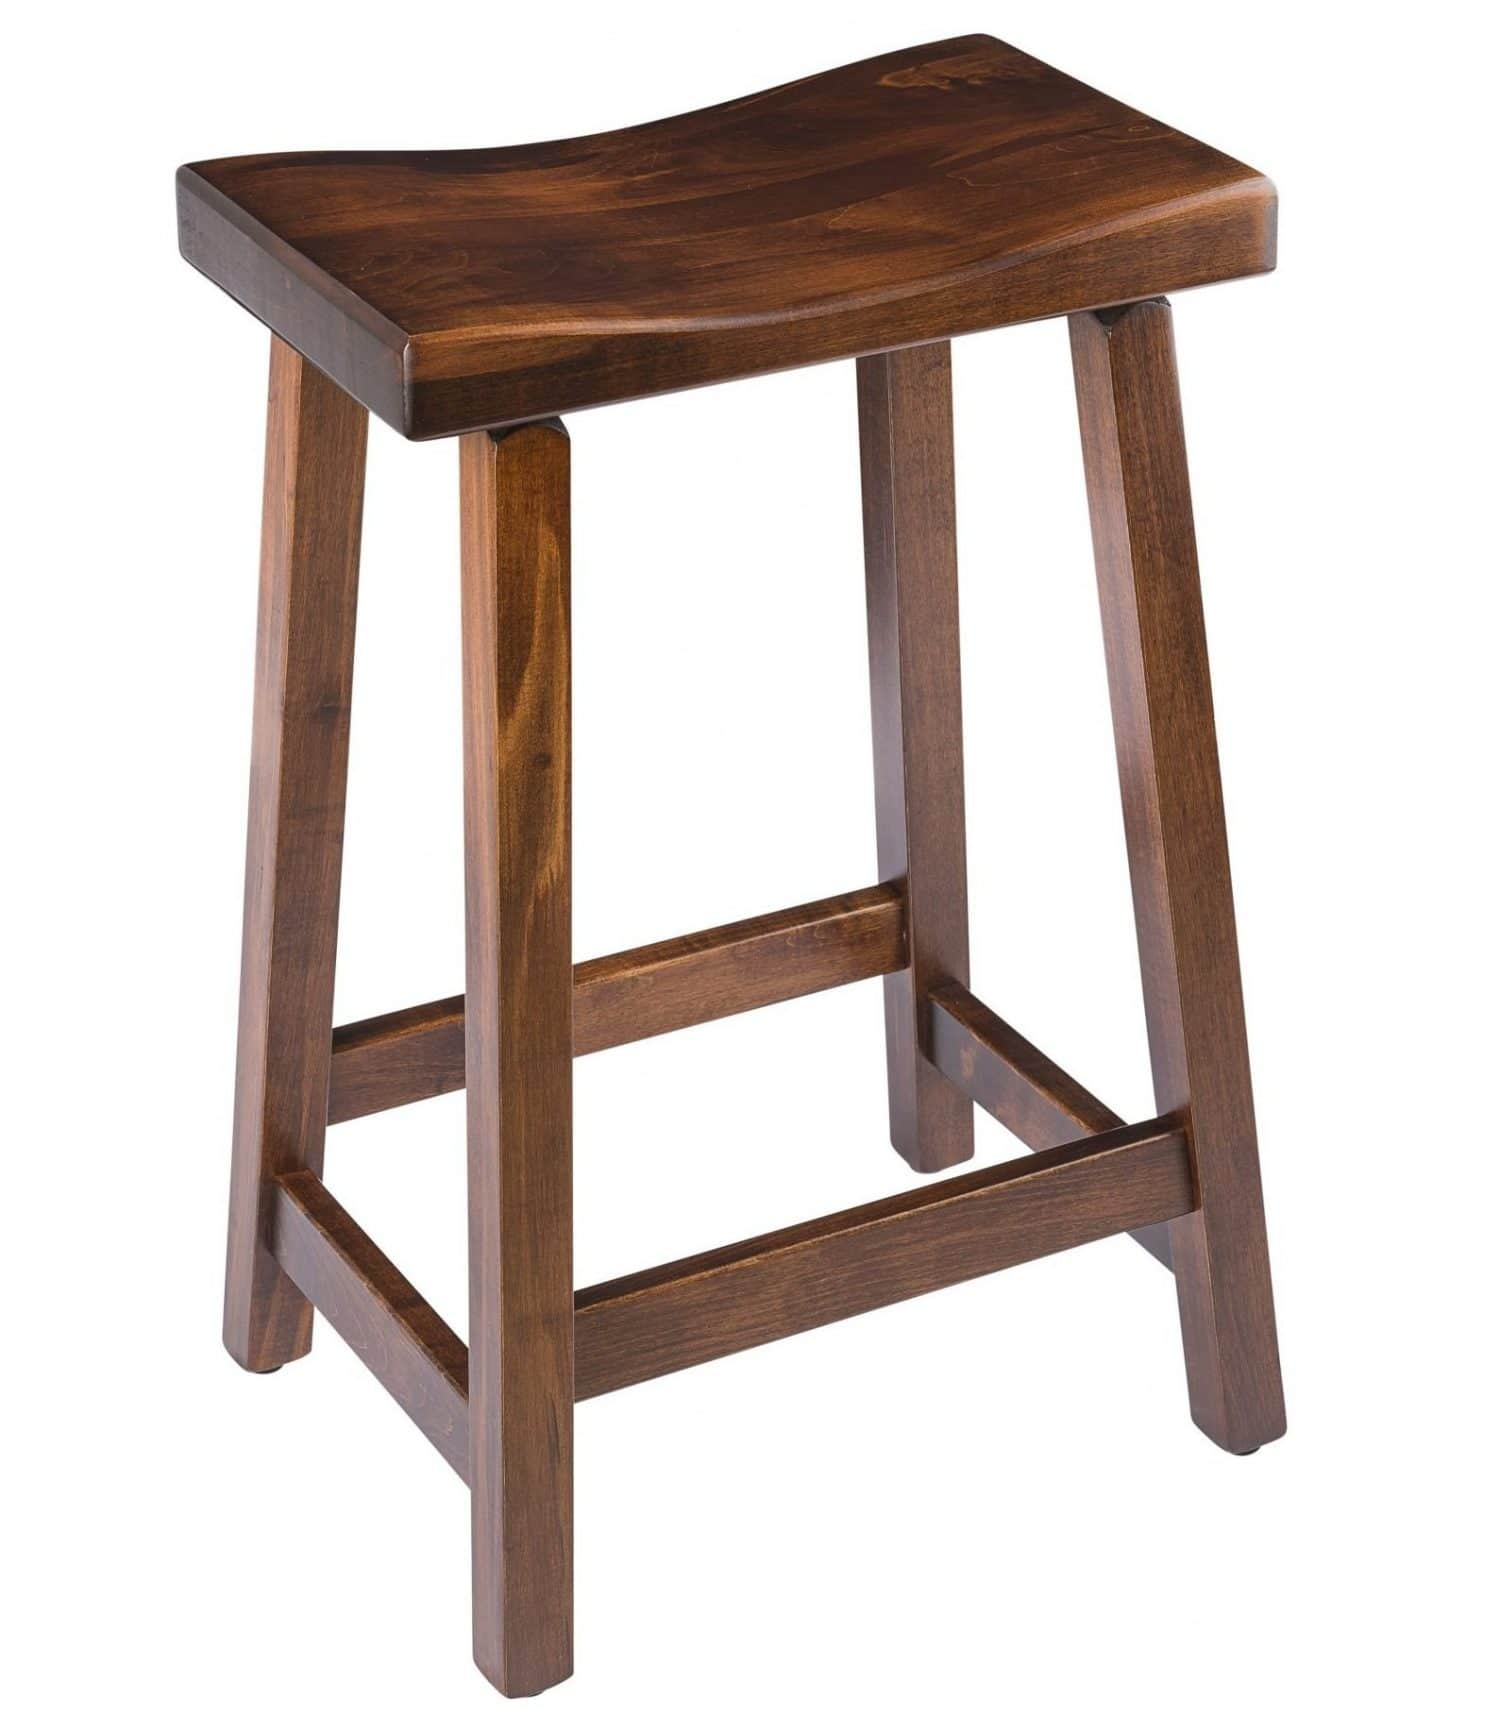 Saddle Bar Stool In Maple Wood